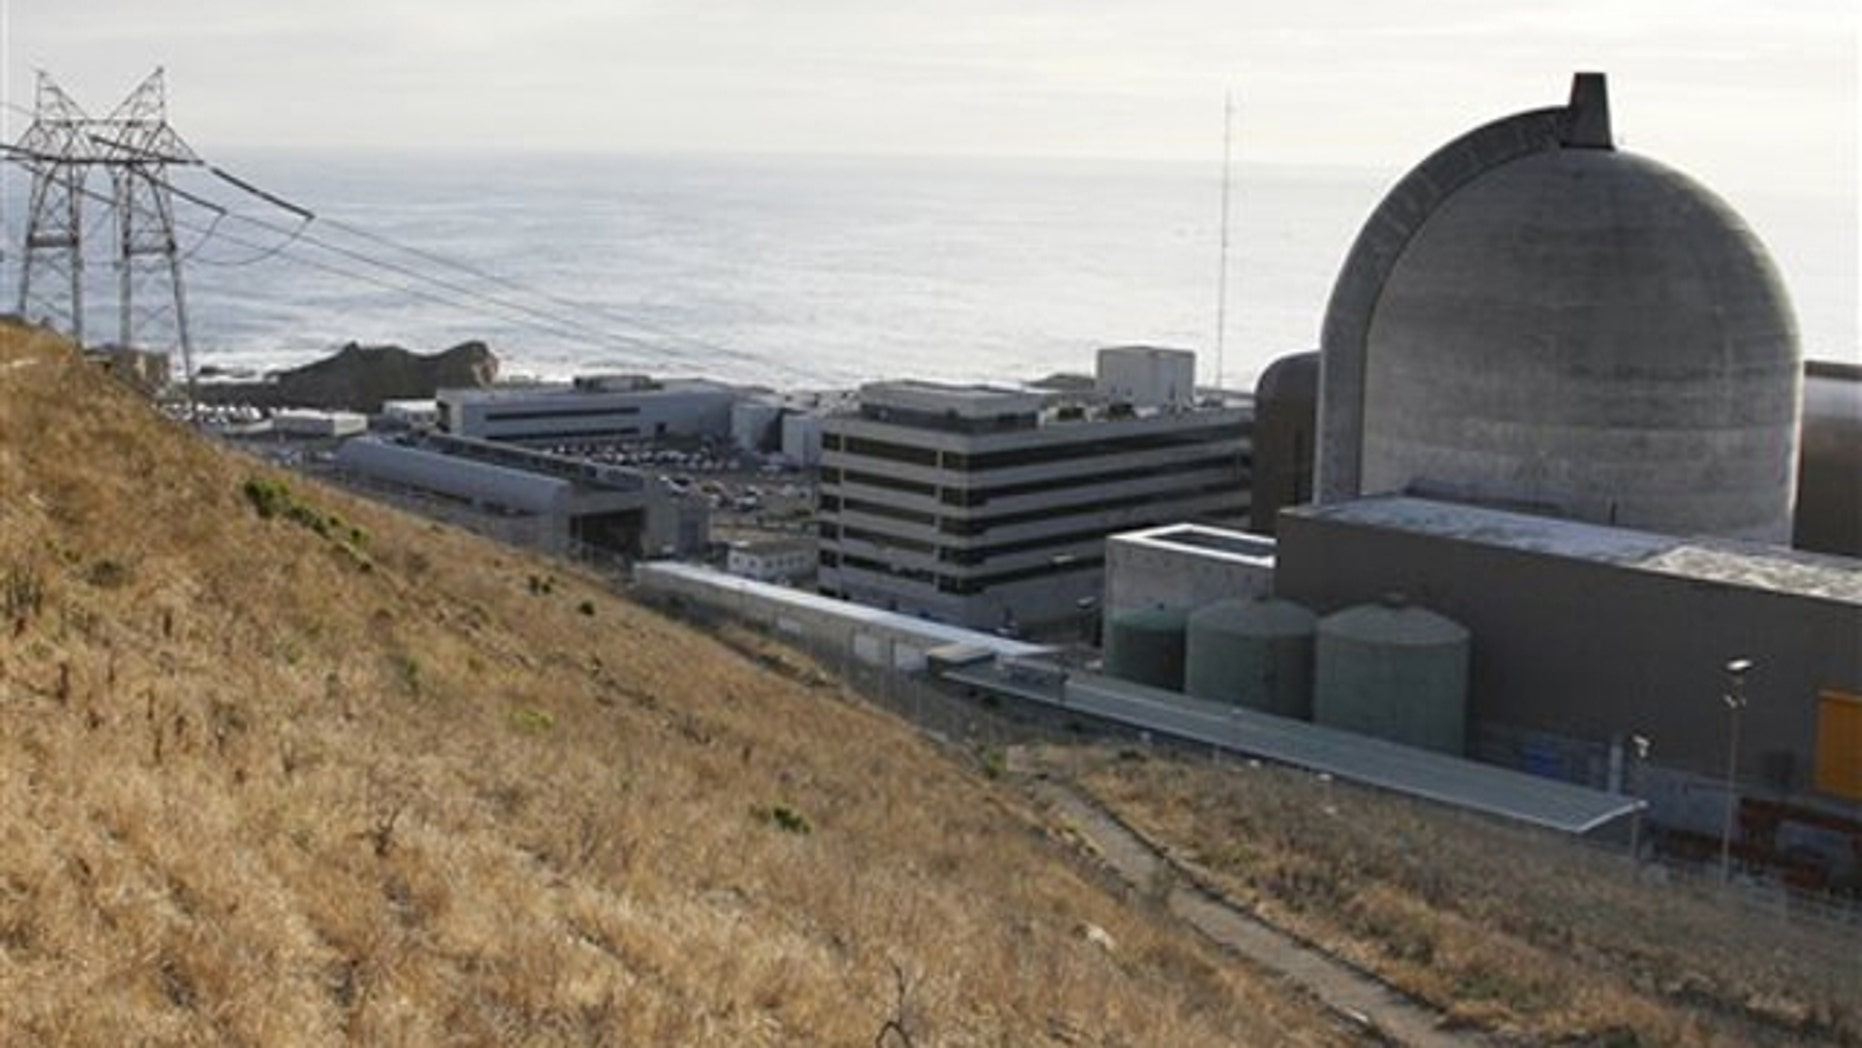 This Nov. 3, 2008, file photo shows one of Pacific Gas and Electric's Diablo Canyon Power Plant's nuclear reactors in Avila Beach, Calif.